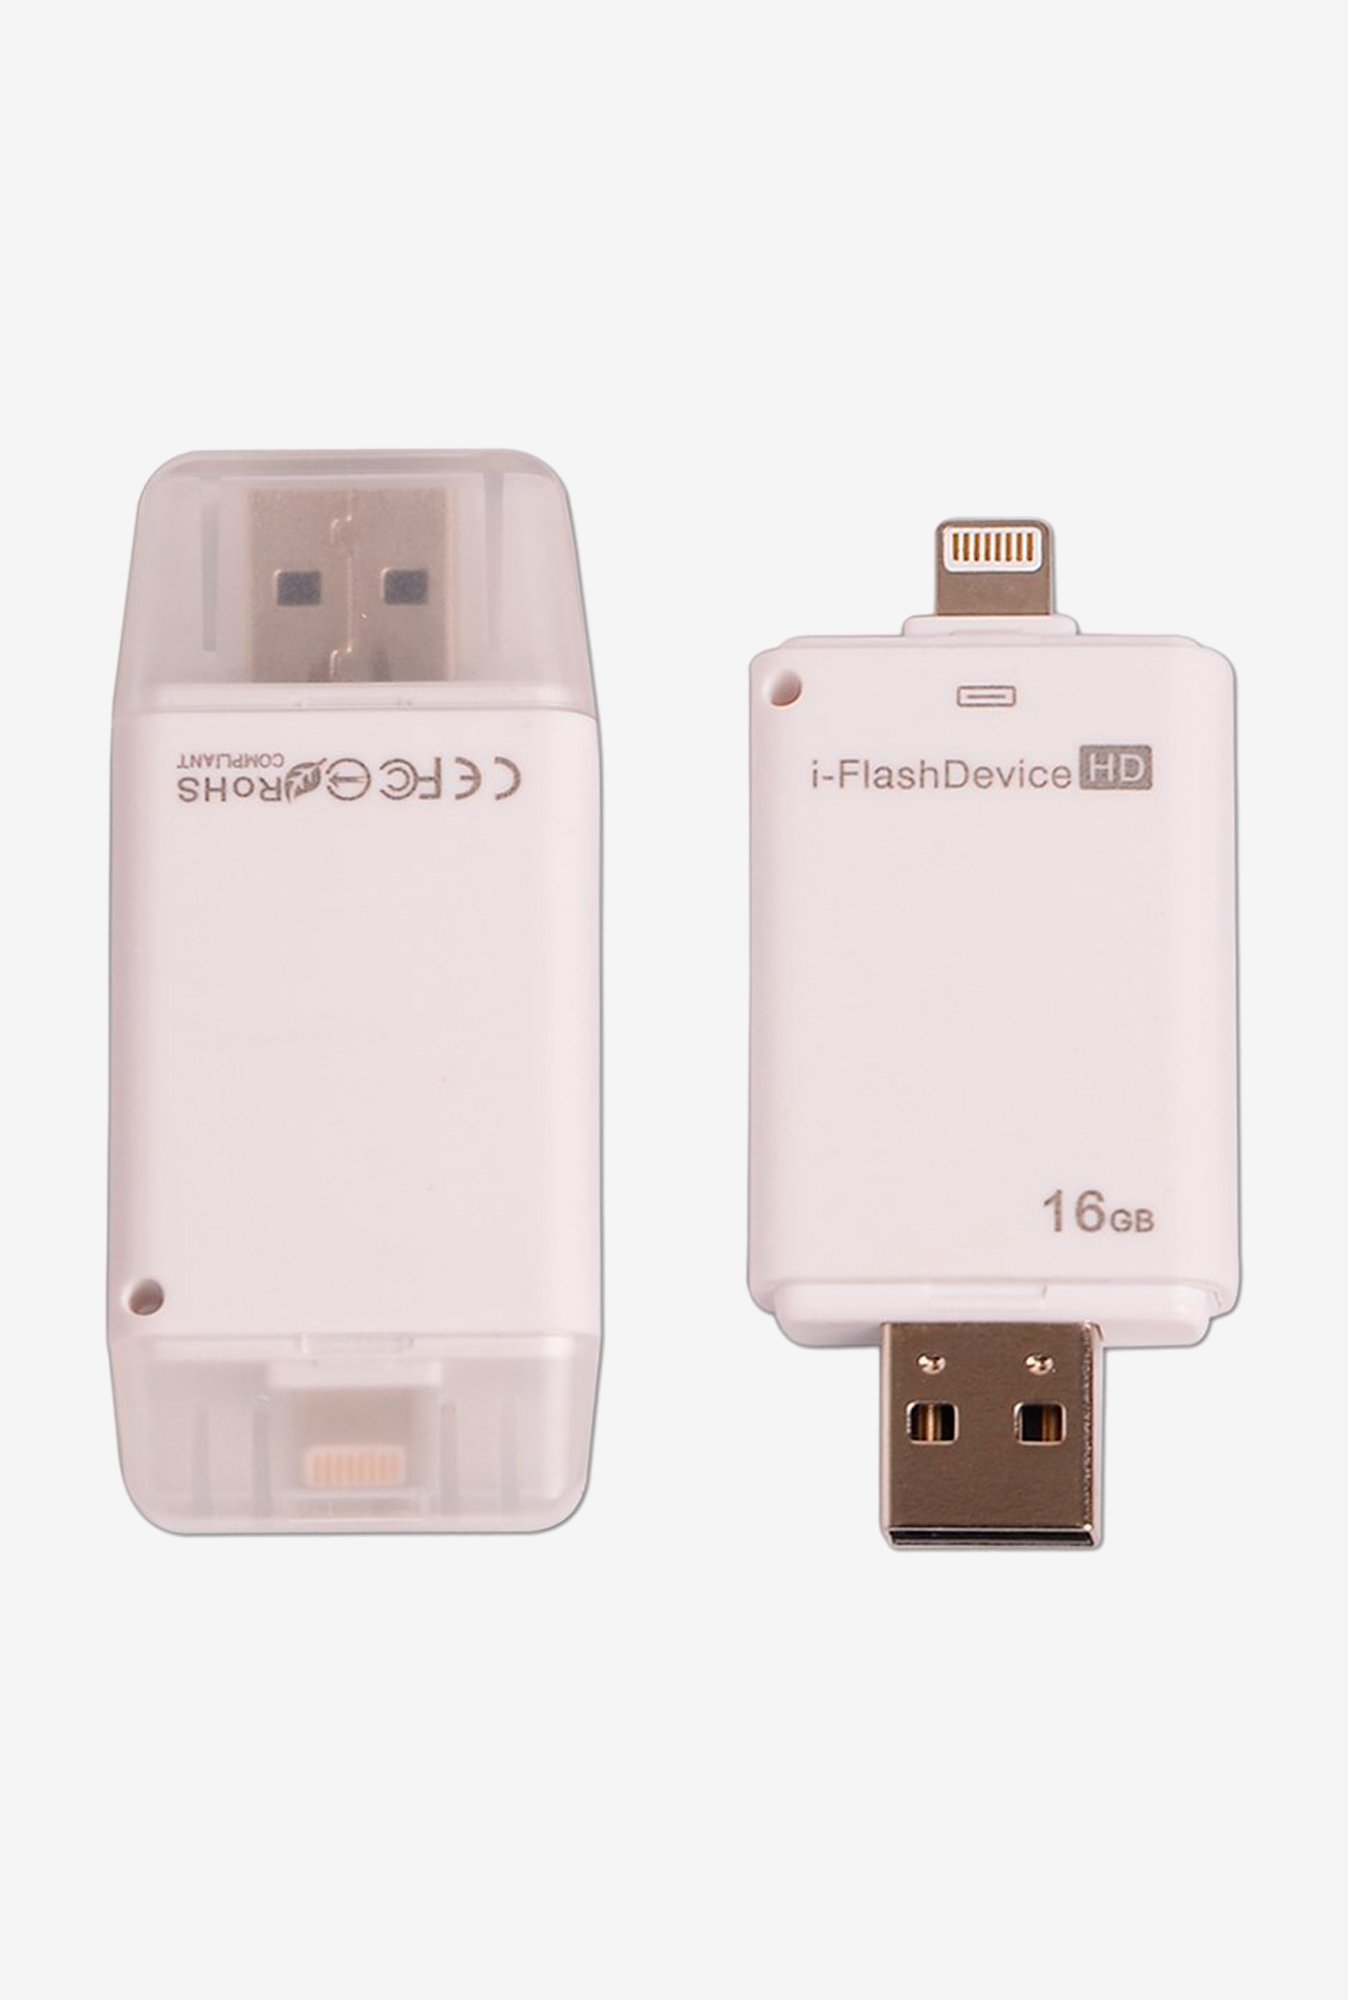 Callmate i-Flash Device for iPhone, iPad and iPod White